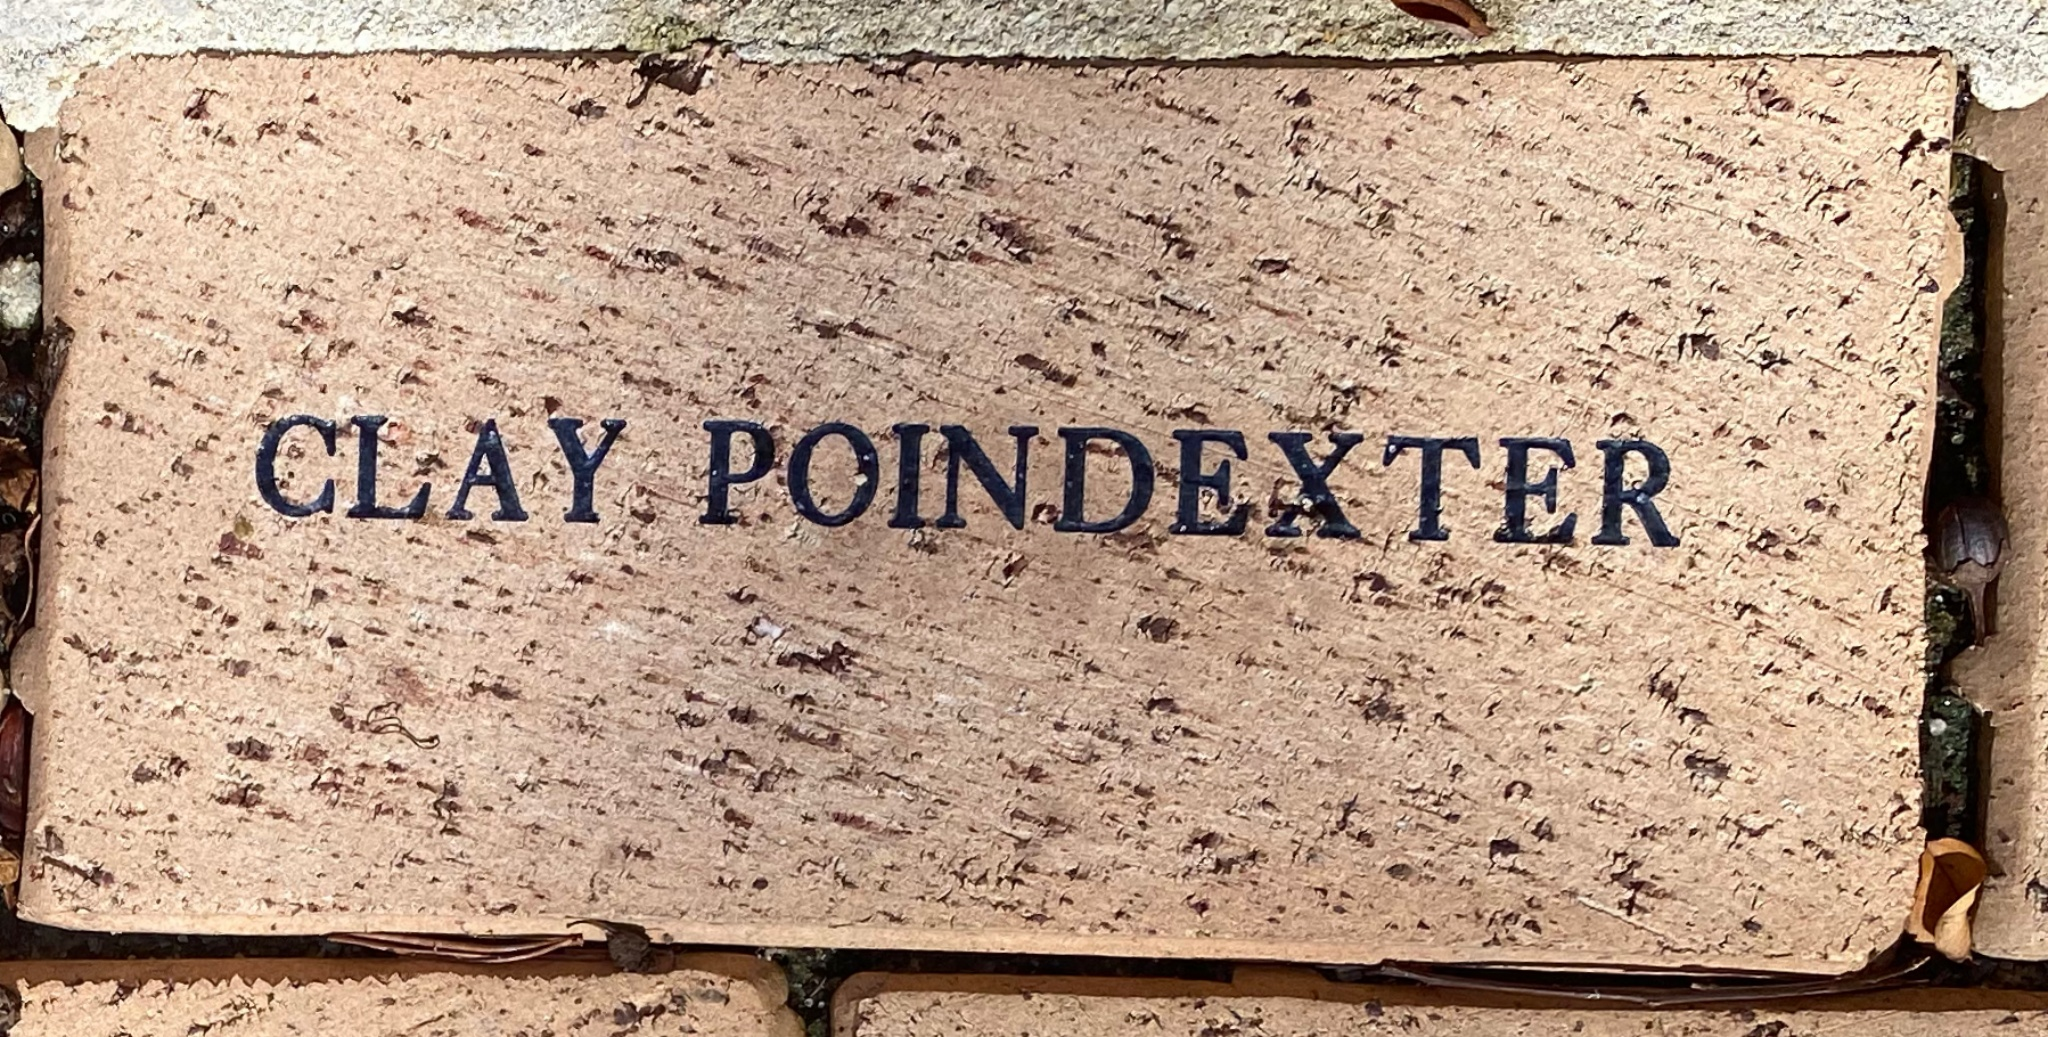 CLAY POINDEXTER